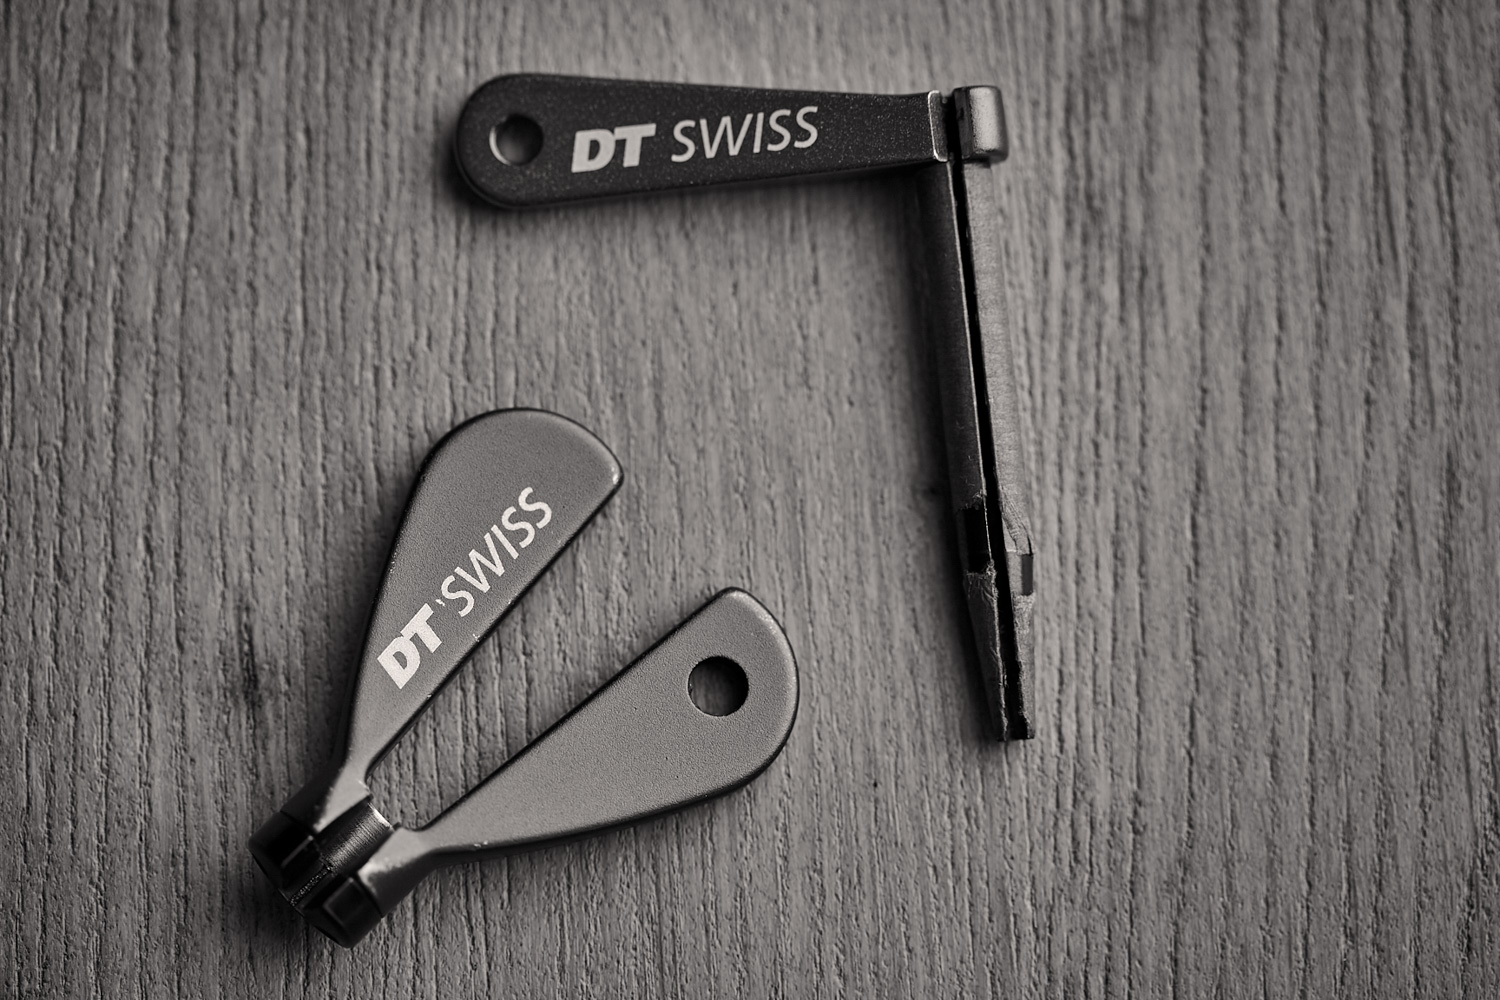 A DT Swiss spoke key and their bladed spoke holder. Designed to work perfectly together, these are my fave tools for building with bladed spokes.